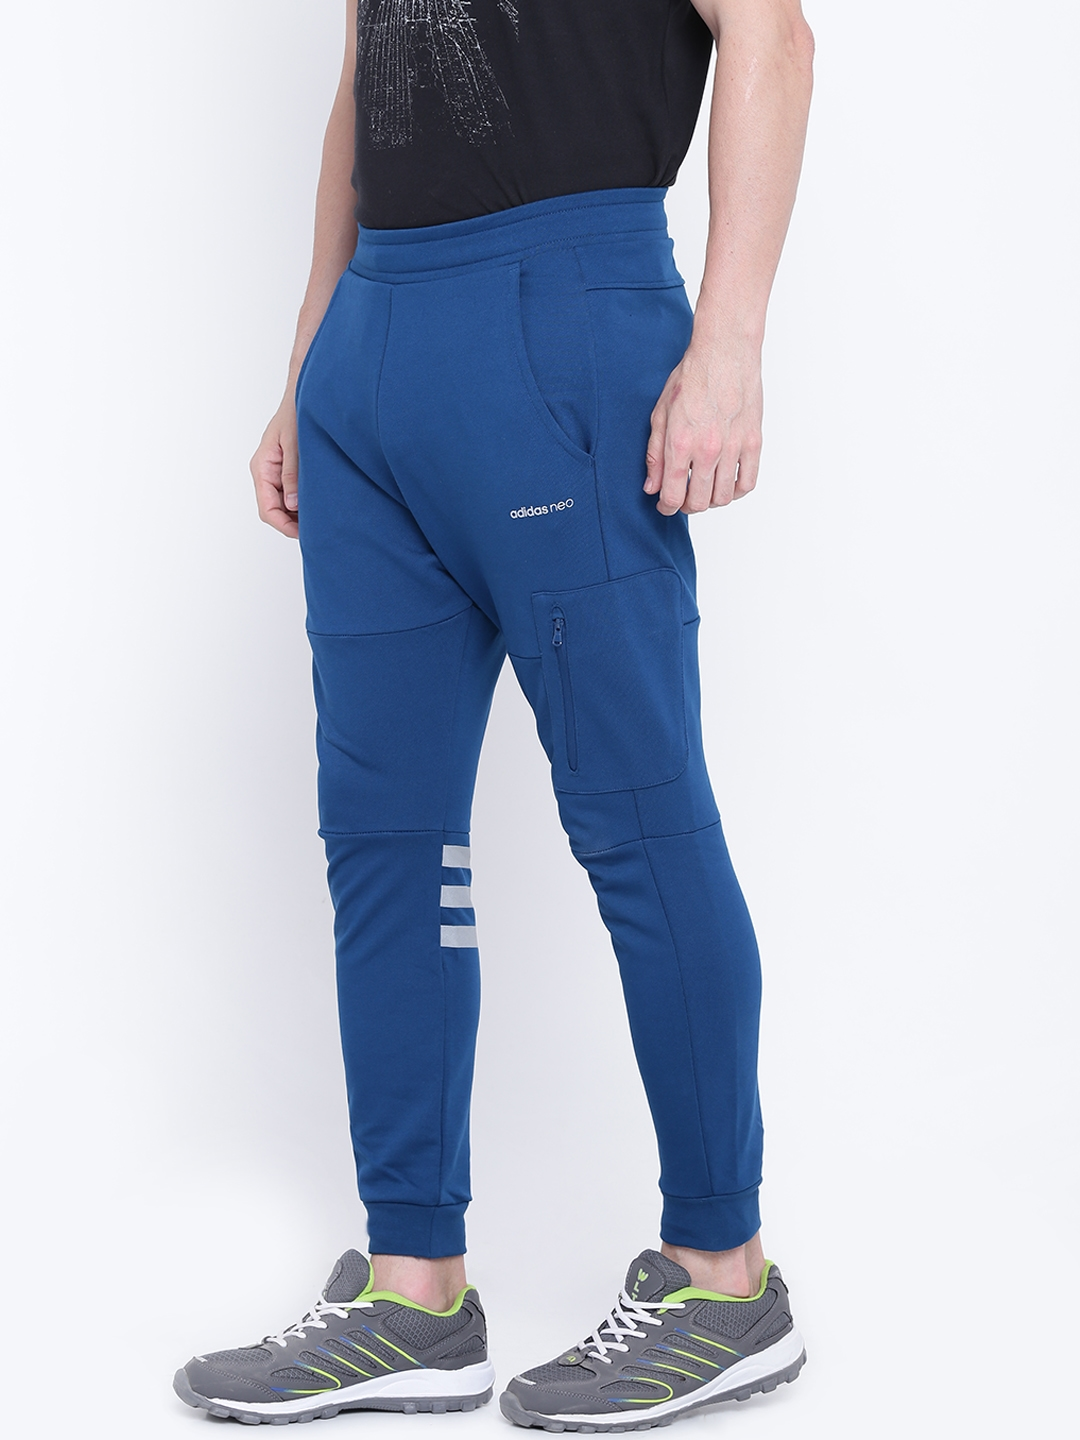 Buy Men Blue Adidas For Neo Pants Track Joggers Teal Cs r64nrT